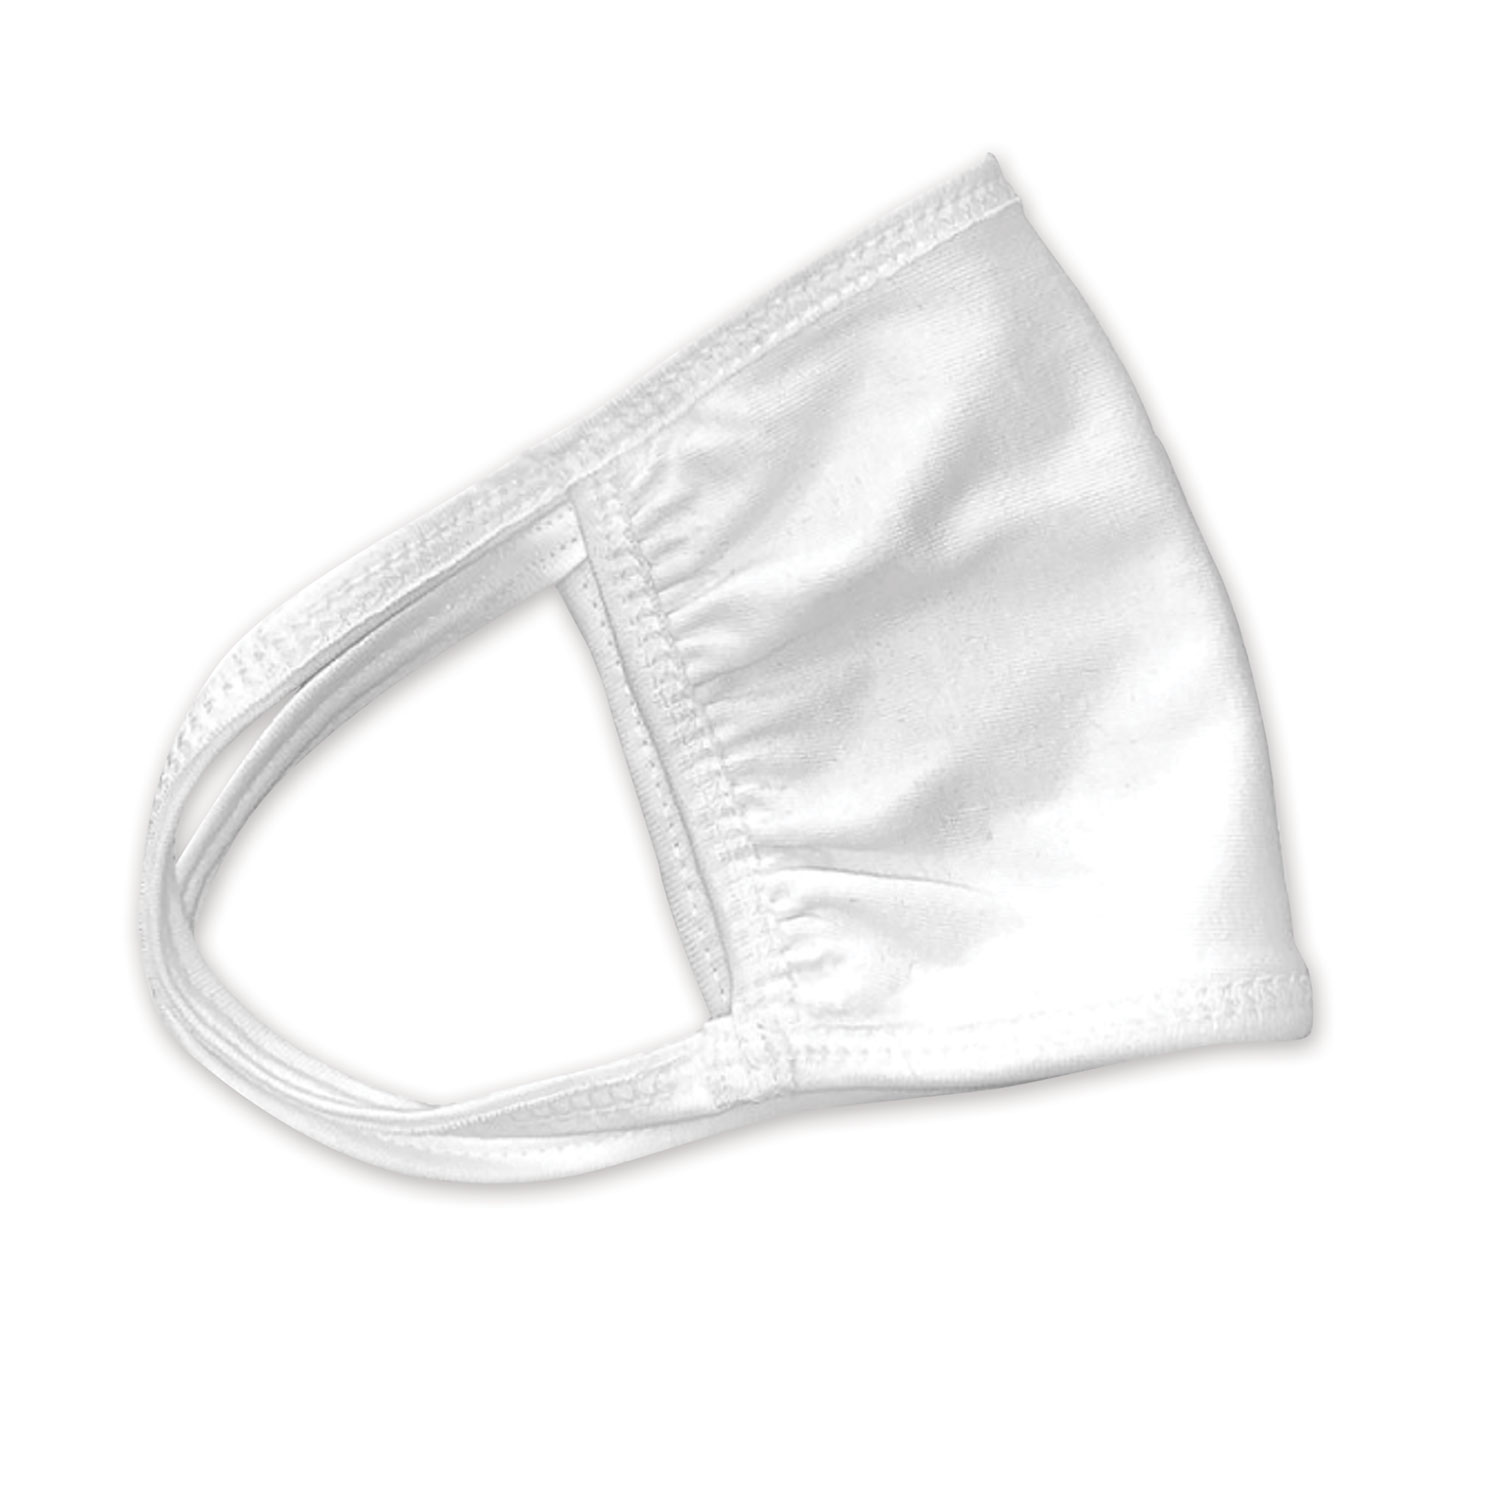 Cotton Face Mask with Antimicrobial Finish, White, 600/Carton